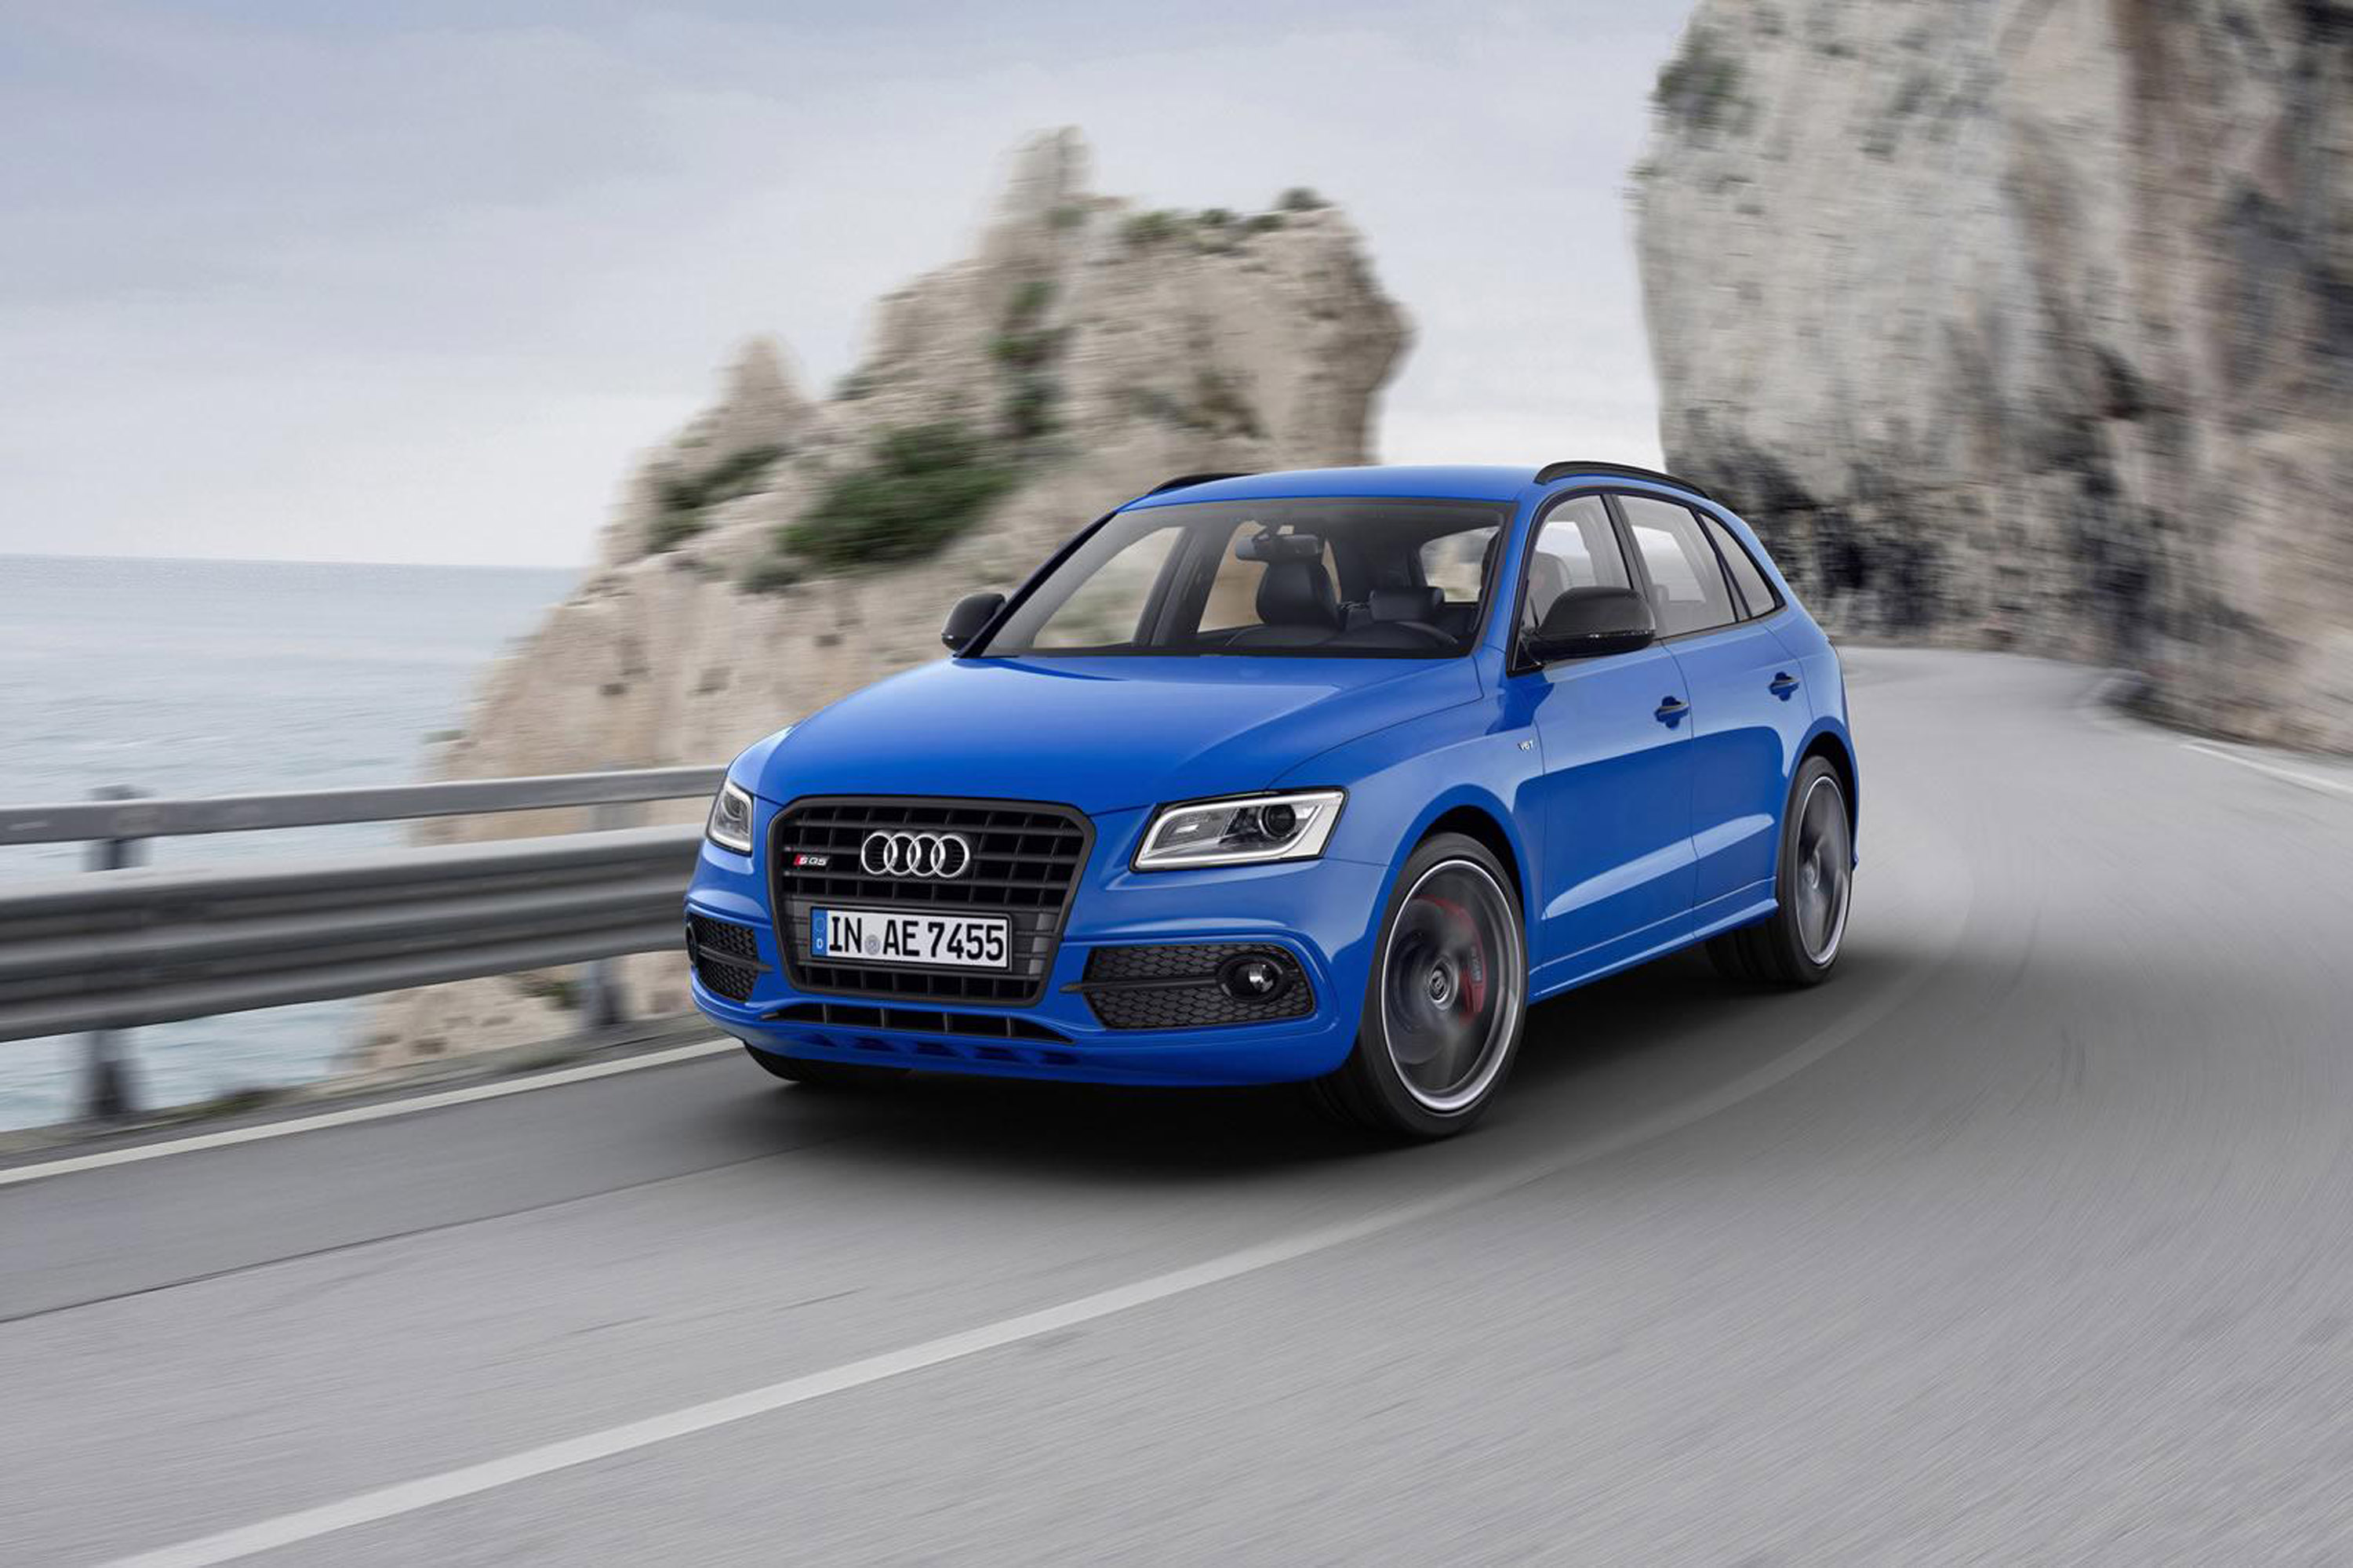 2015 audi sq5 tdi will come with boosted power and additional trims